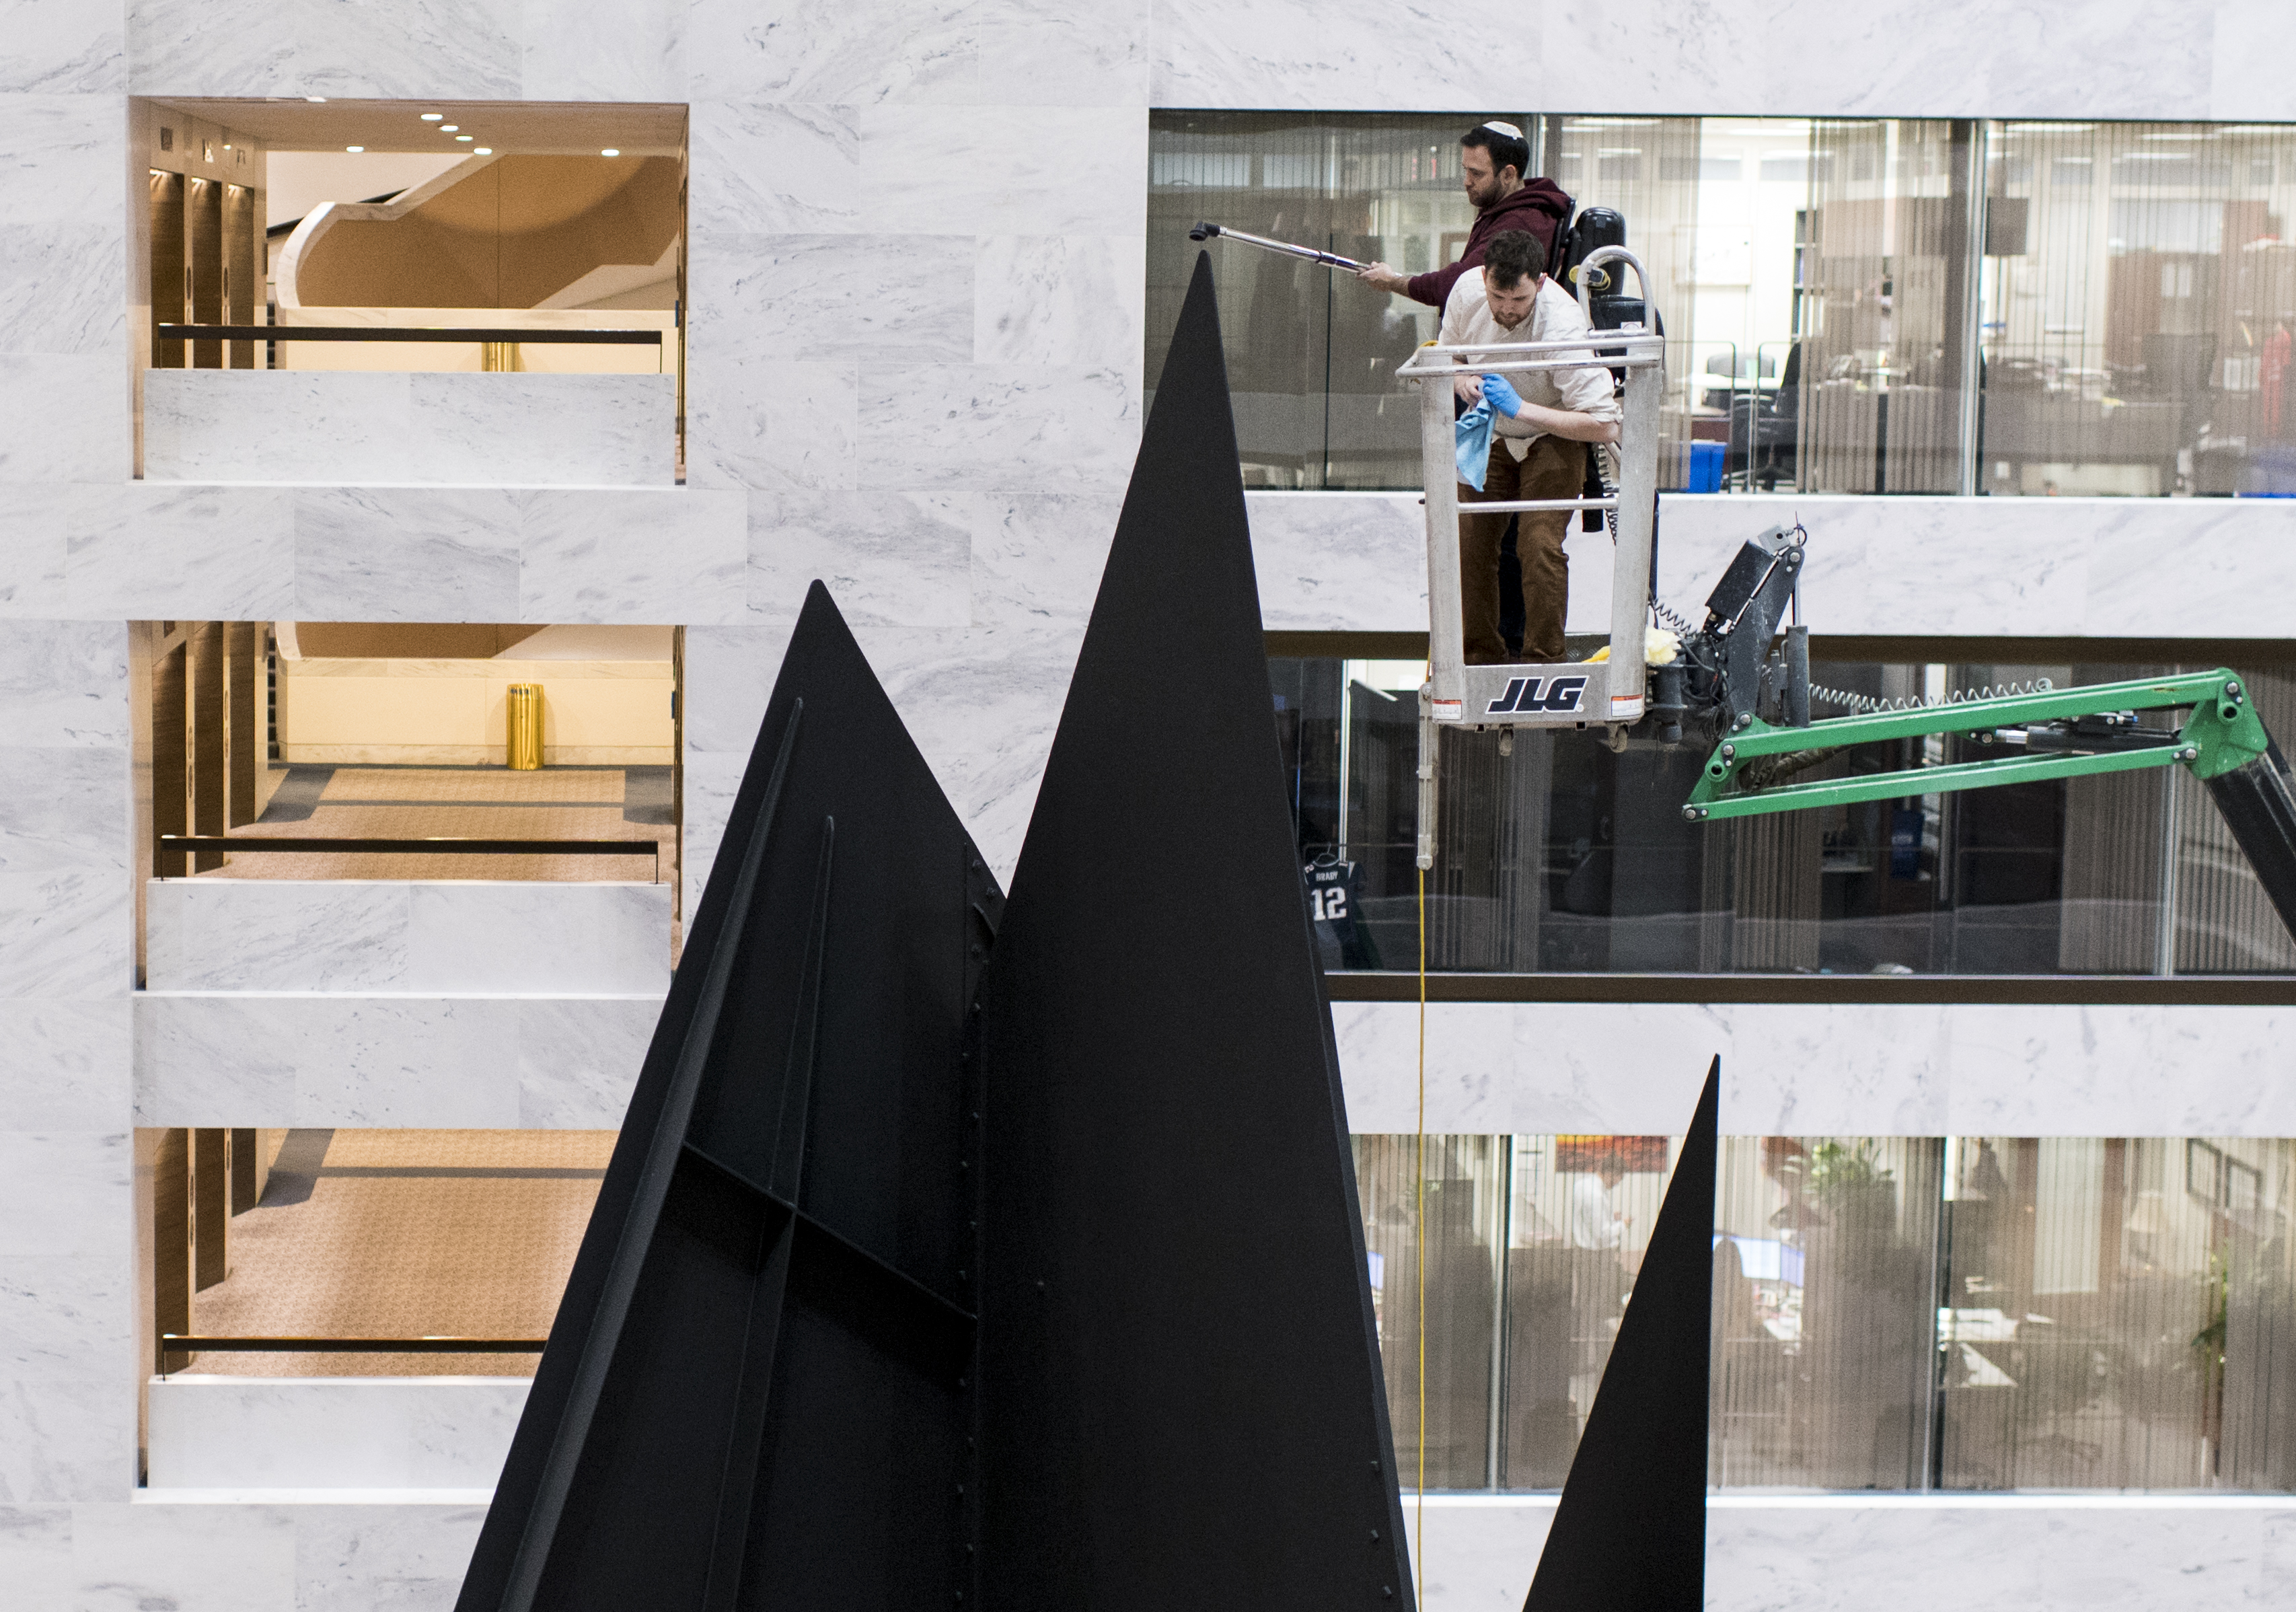 UNITED STATES - JANUARY 6: A work crew vacuums the peak of Calder's Mountains and Clouds intsallation in the atrium of the Hart Senate Office Building on Monday, Jan. 6, 2020. (Photo By Bill Clark/CQ Roll Call)